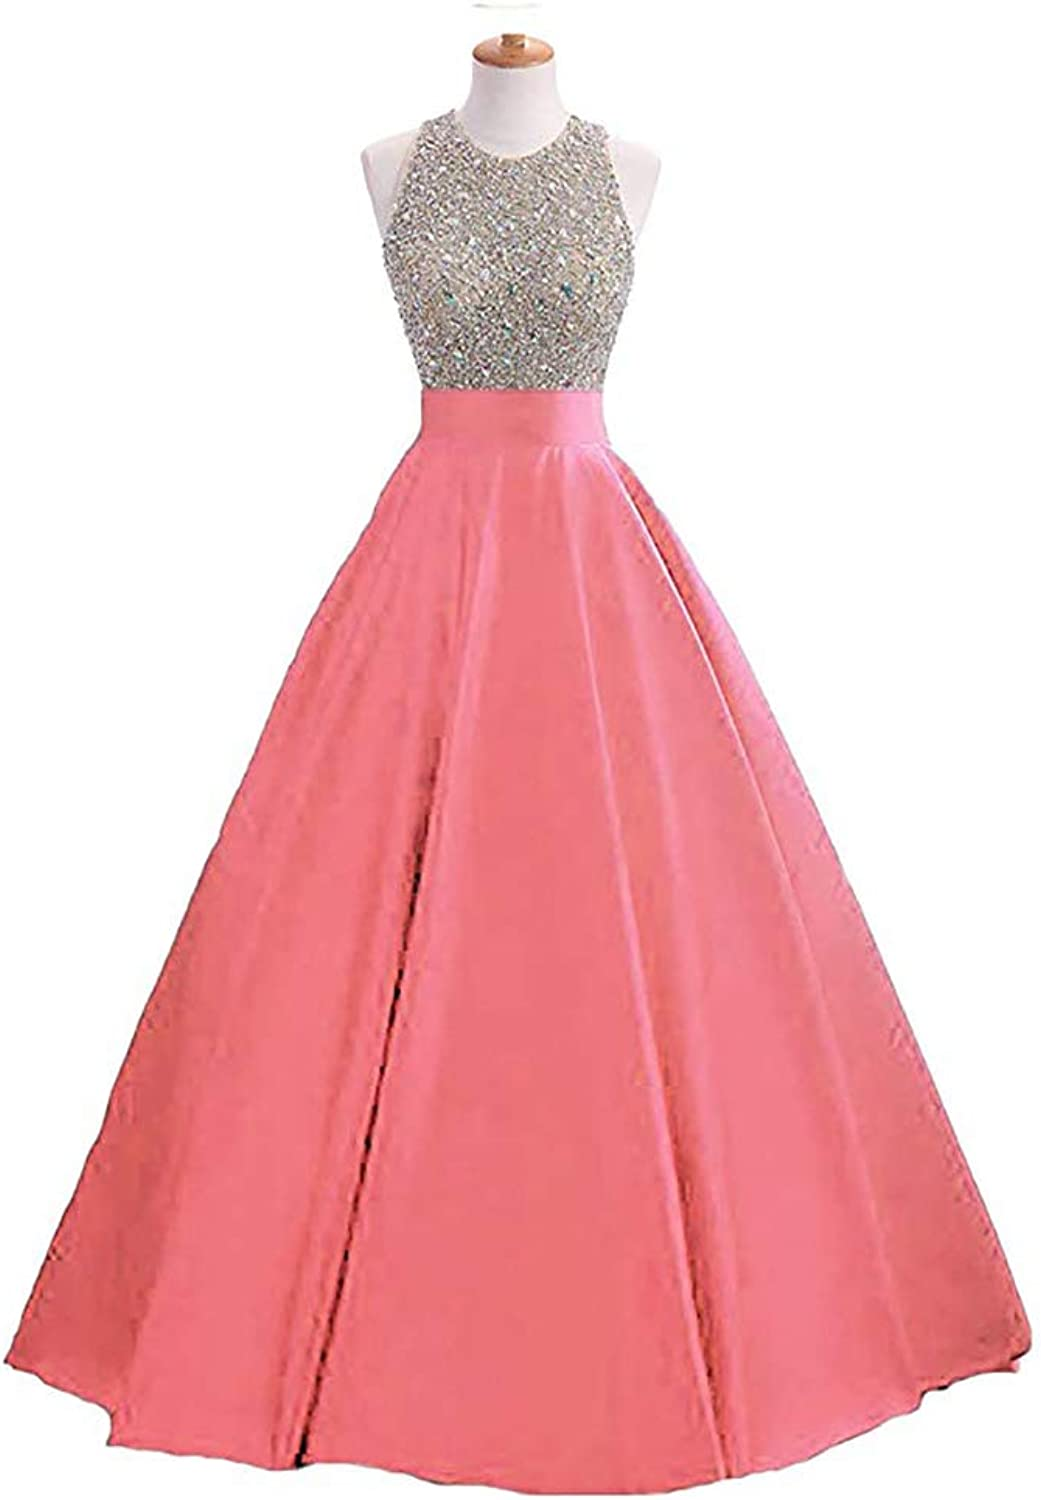 ANFF Women's Sequins Ball Gown Prom Dresses Long 2019 Beaded Formal Evening Dresses with Pockets